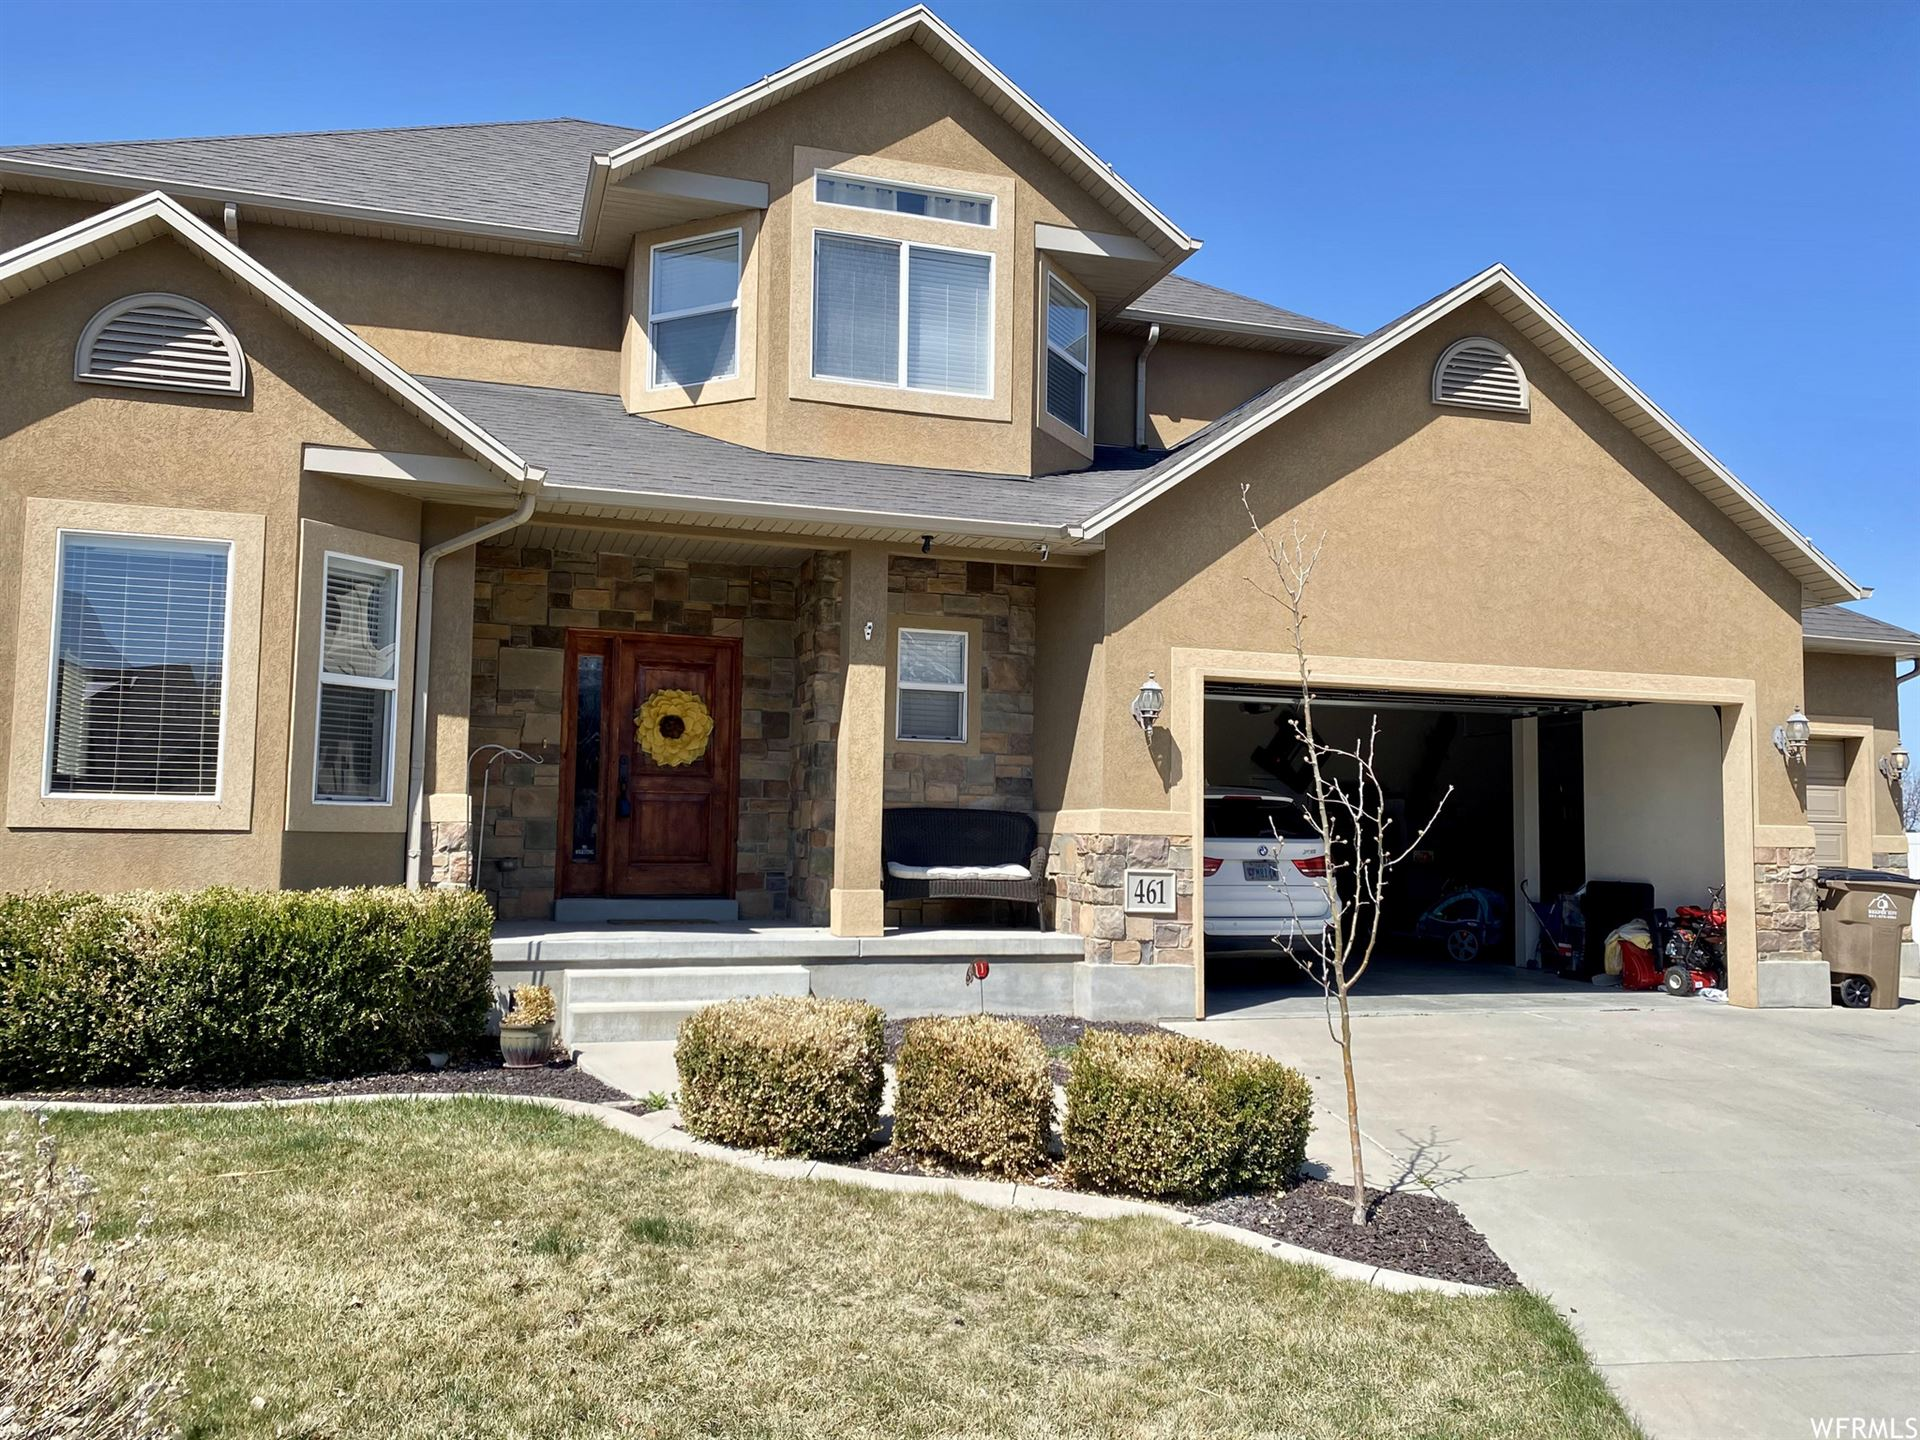 Photo of 461 E FOXSTONE S CV, Draper, UT 84020 (MLS # 1732814)